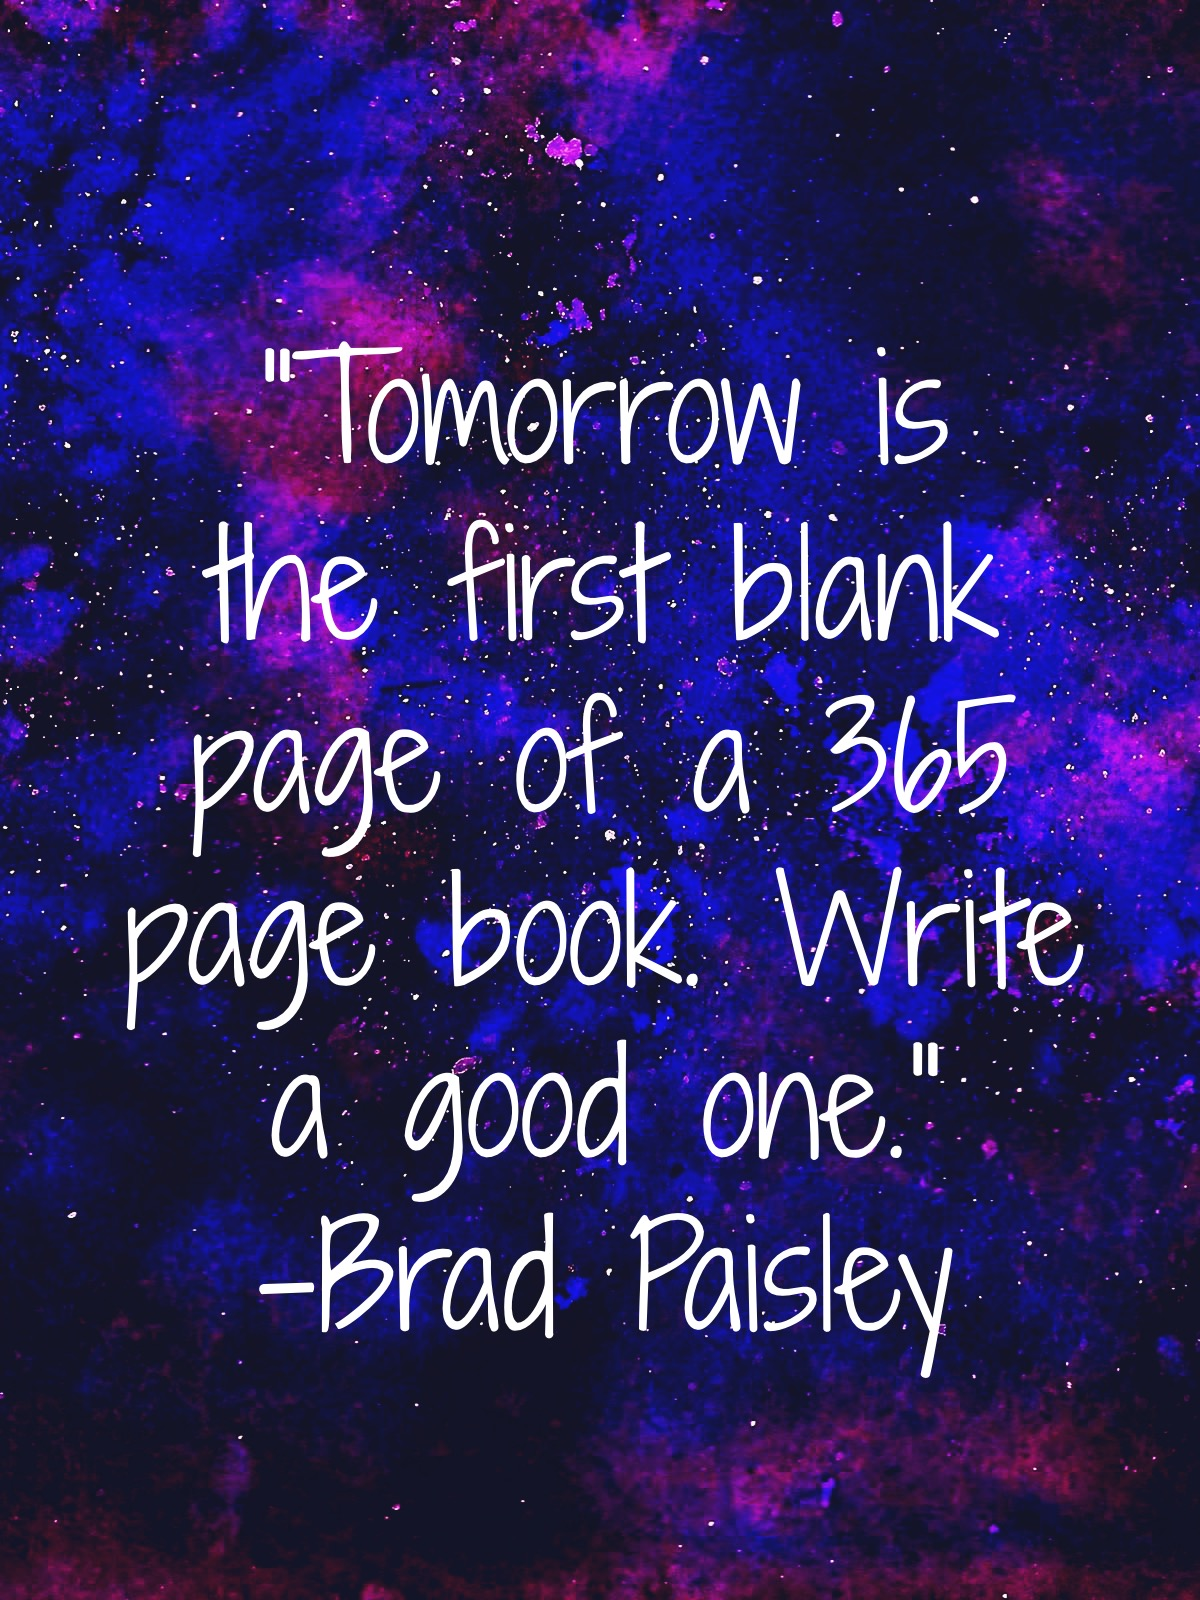 brad paisley new year quote